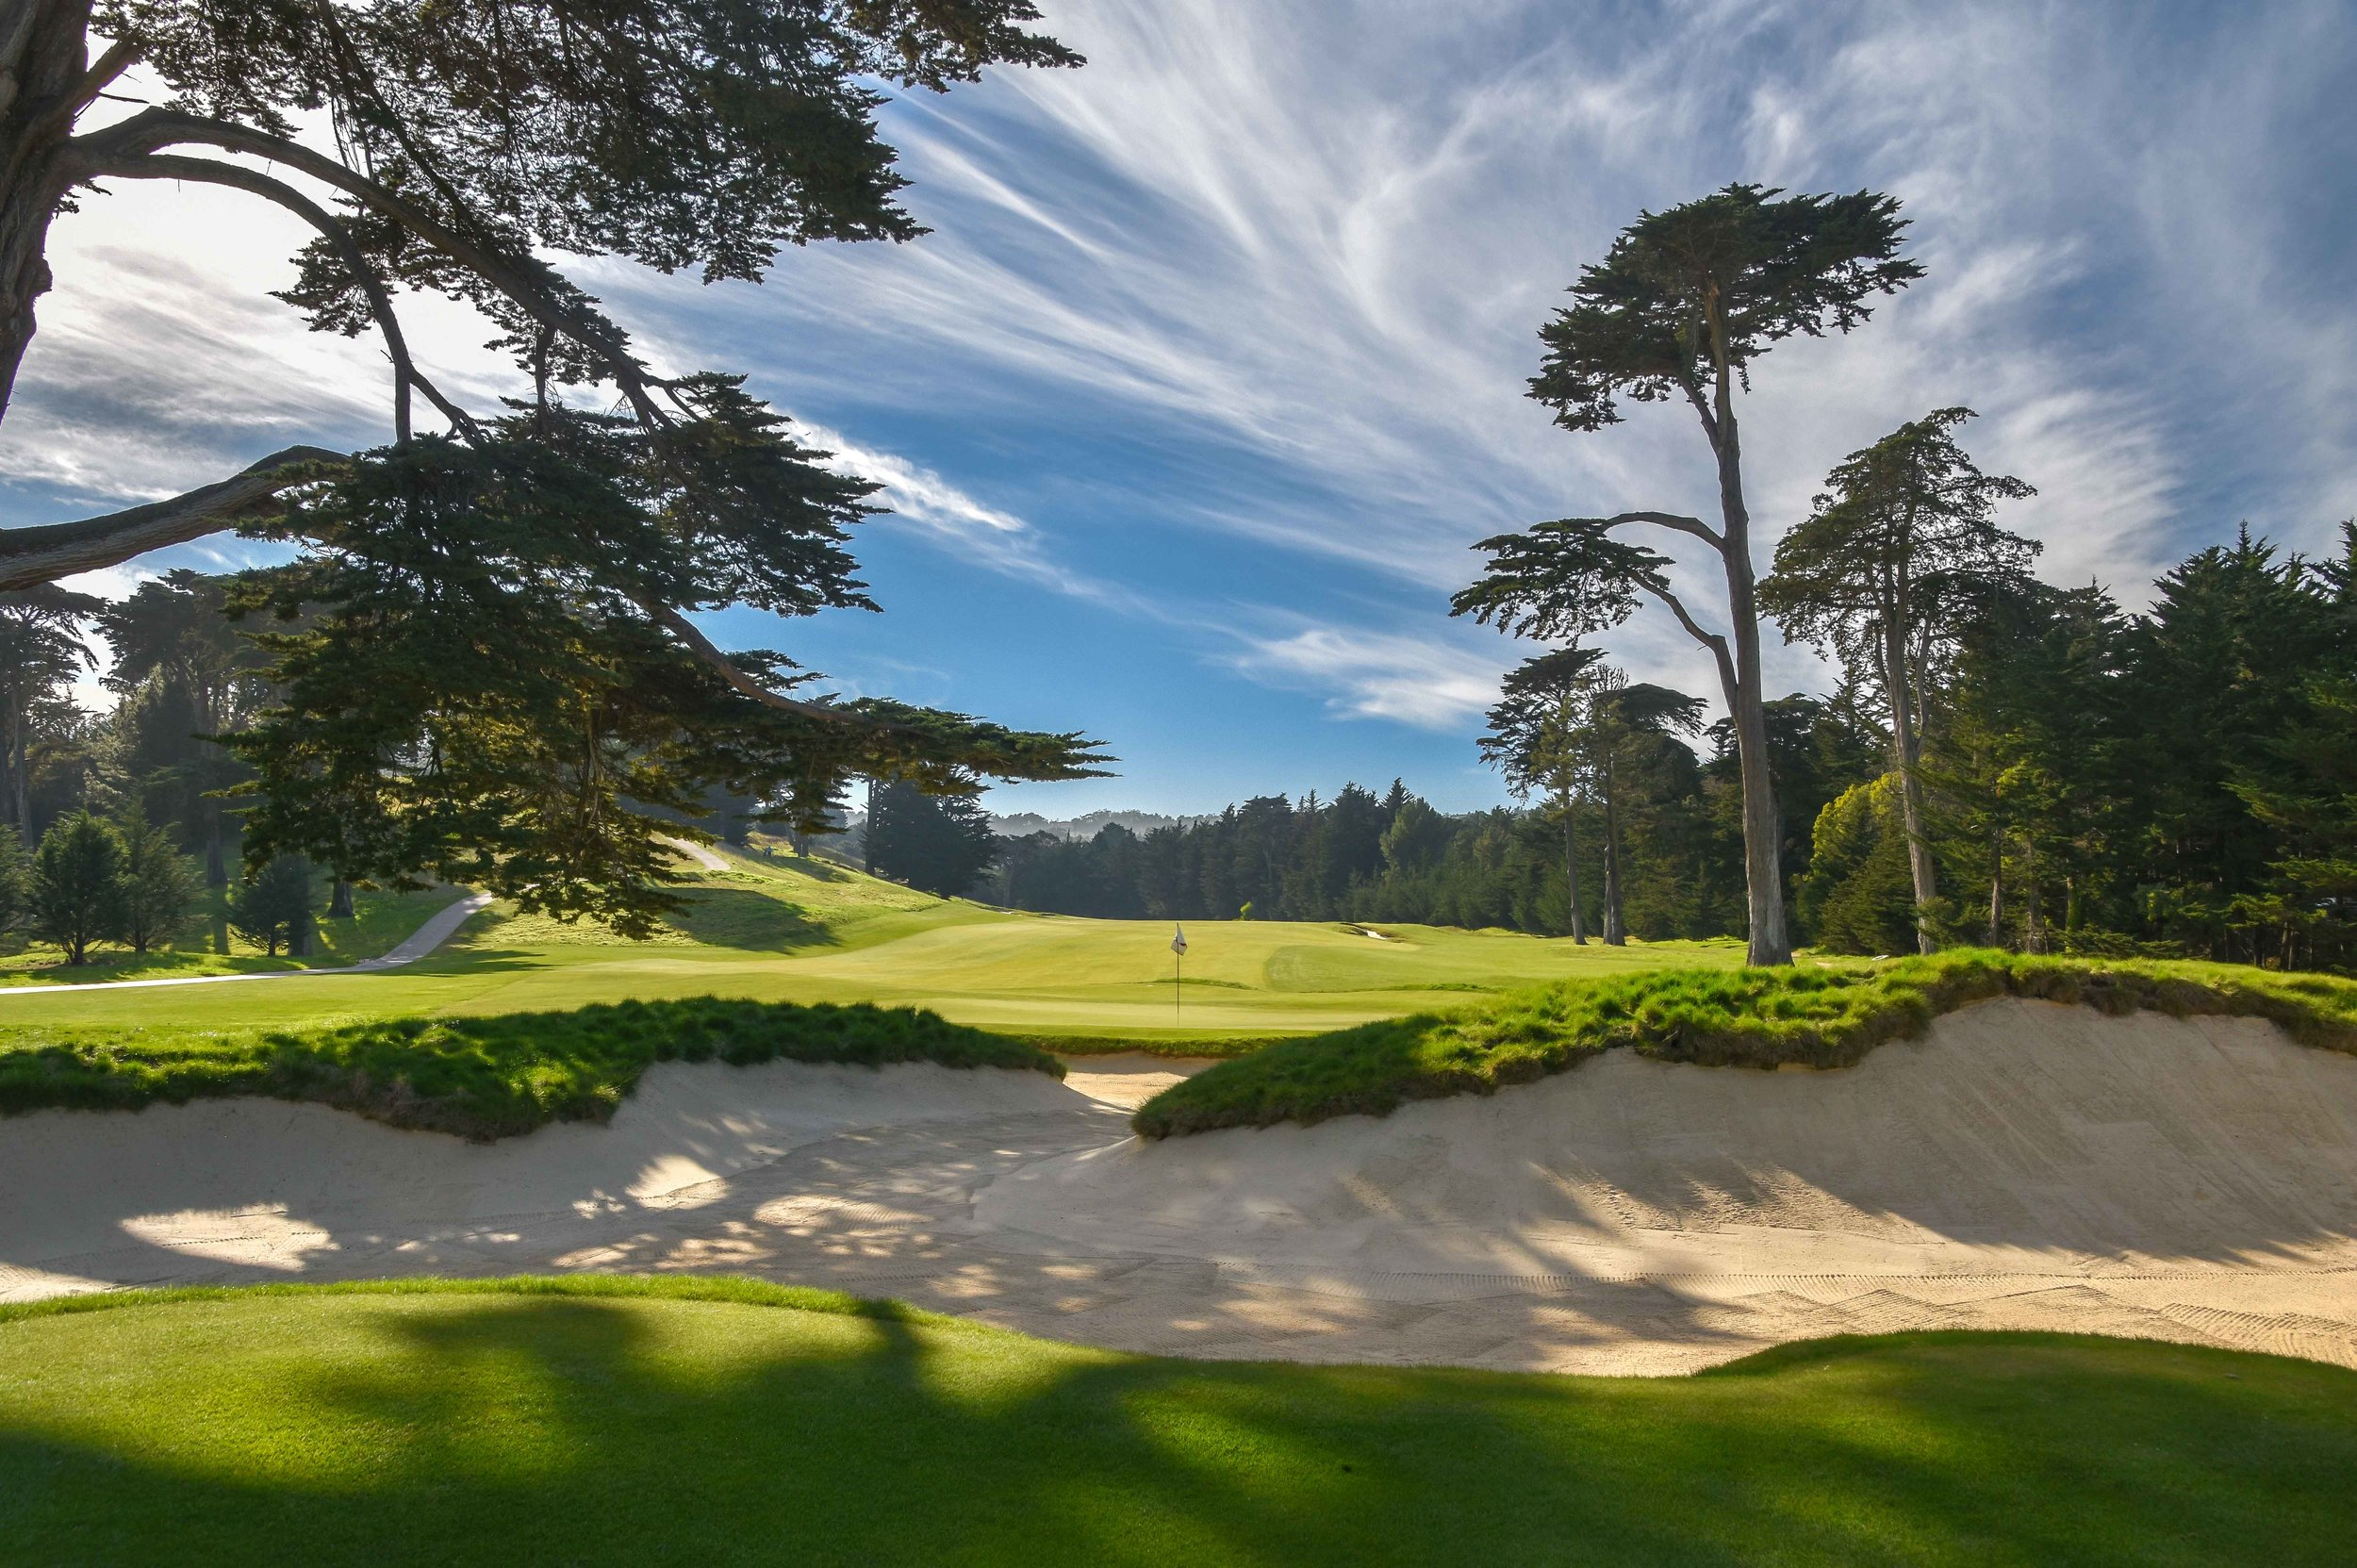 The 3rd hole at Cal Club in South San Francisco